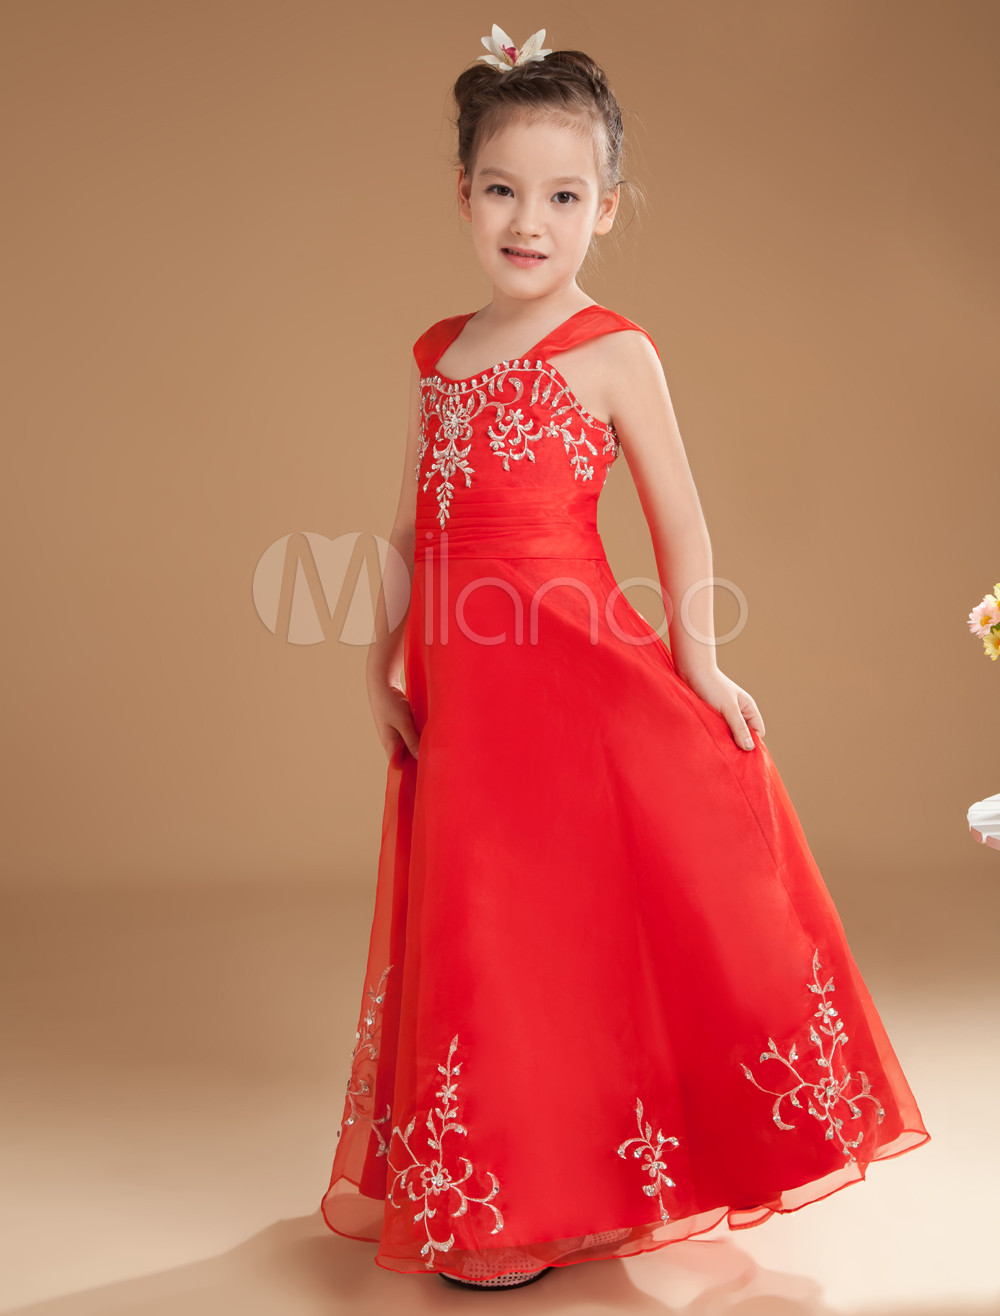 Wedding Little Girls Dresses romantic red satin off the shoulder floor length little girls dress milanoo com